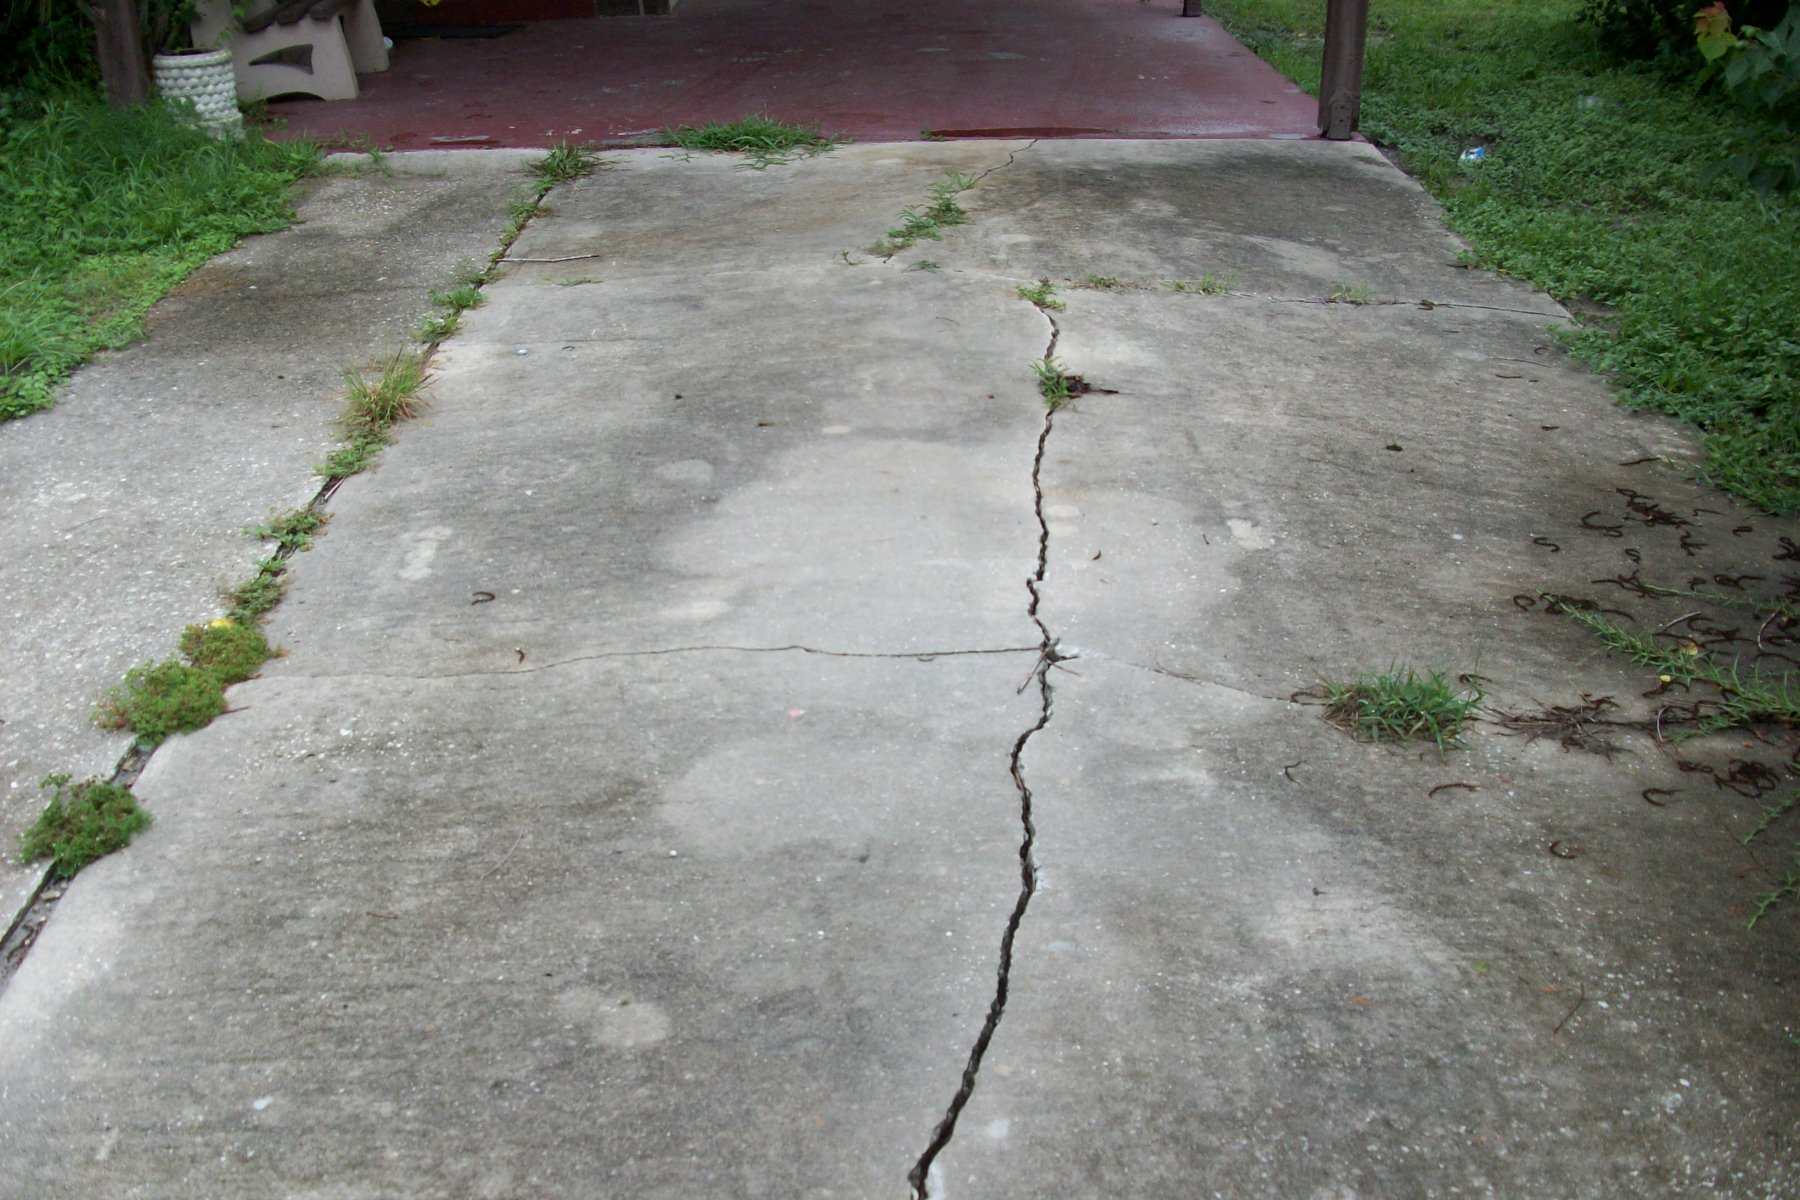 Sinkhole house driveway cracks Seminole County